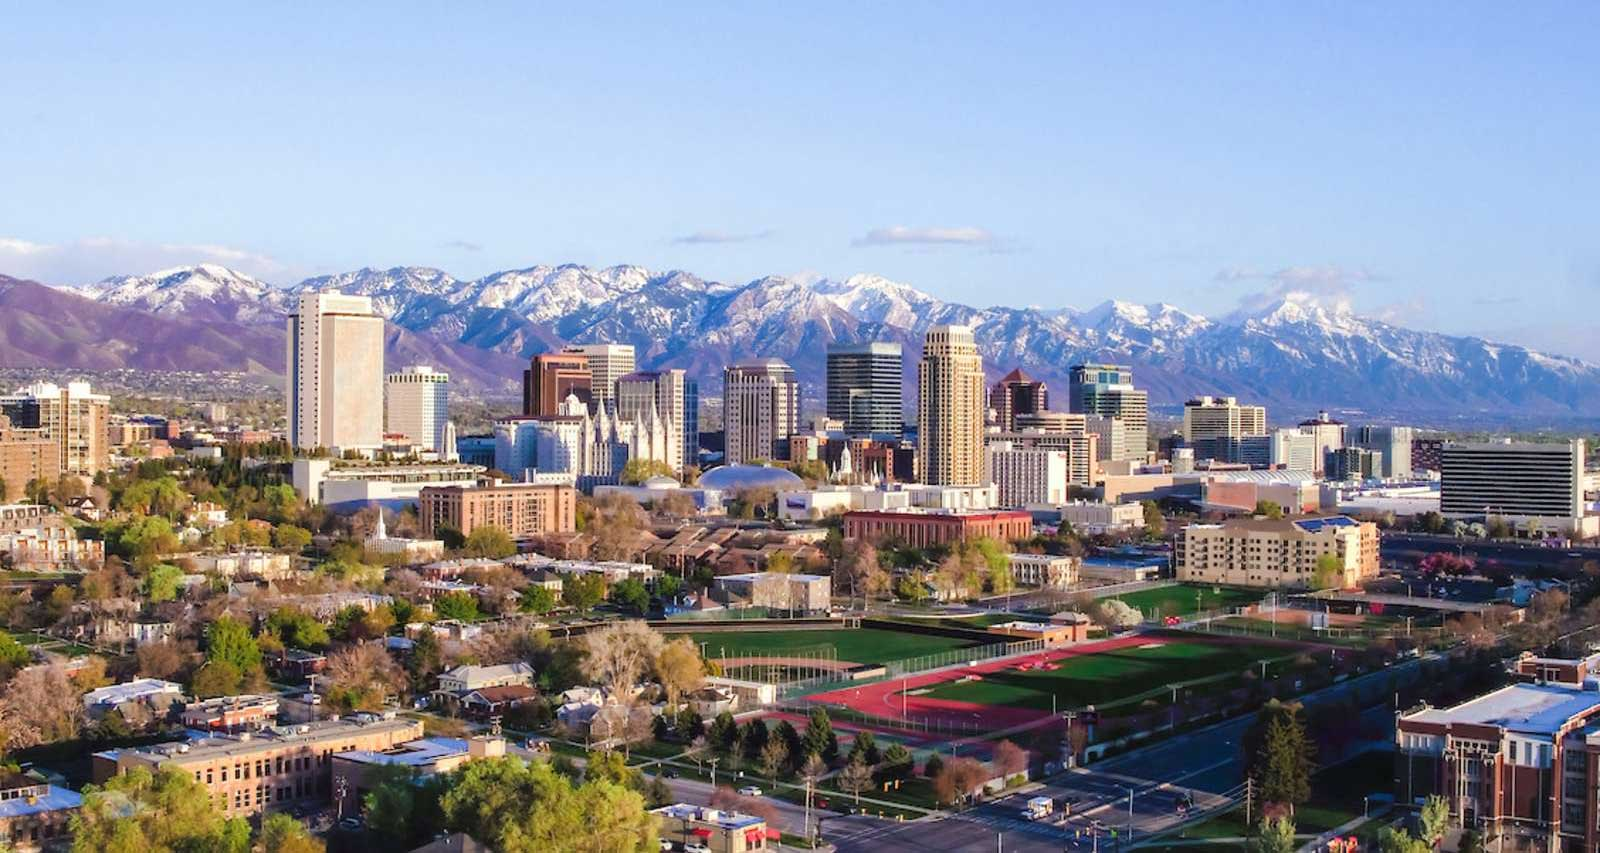 Salt Lake City skyline with snow-capped mountains in the background.